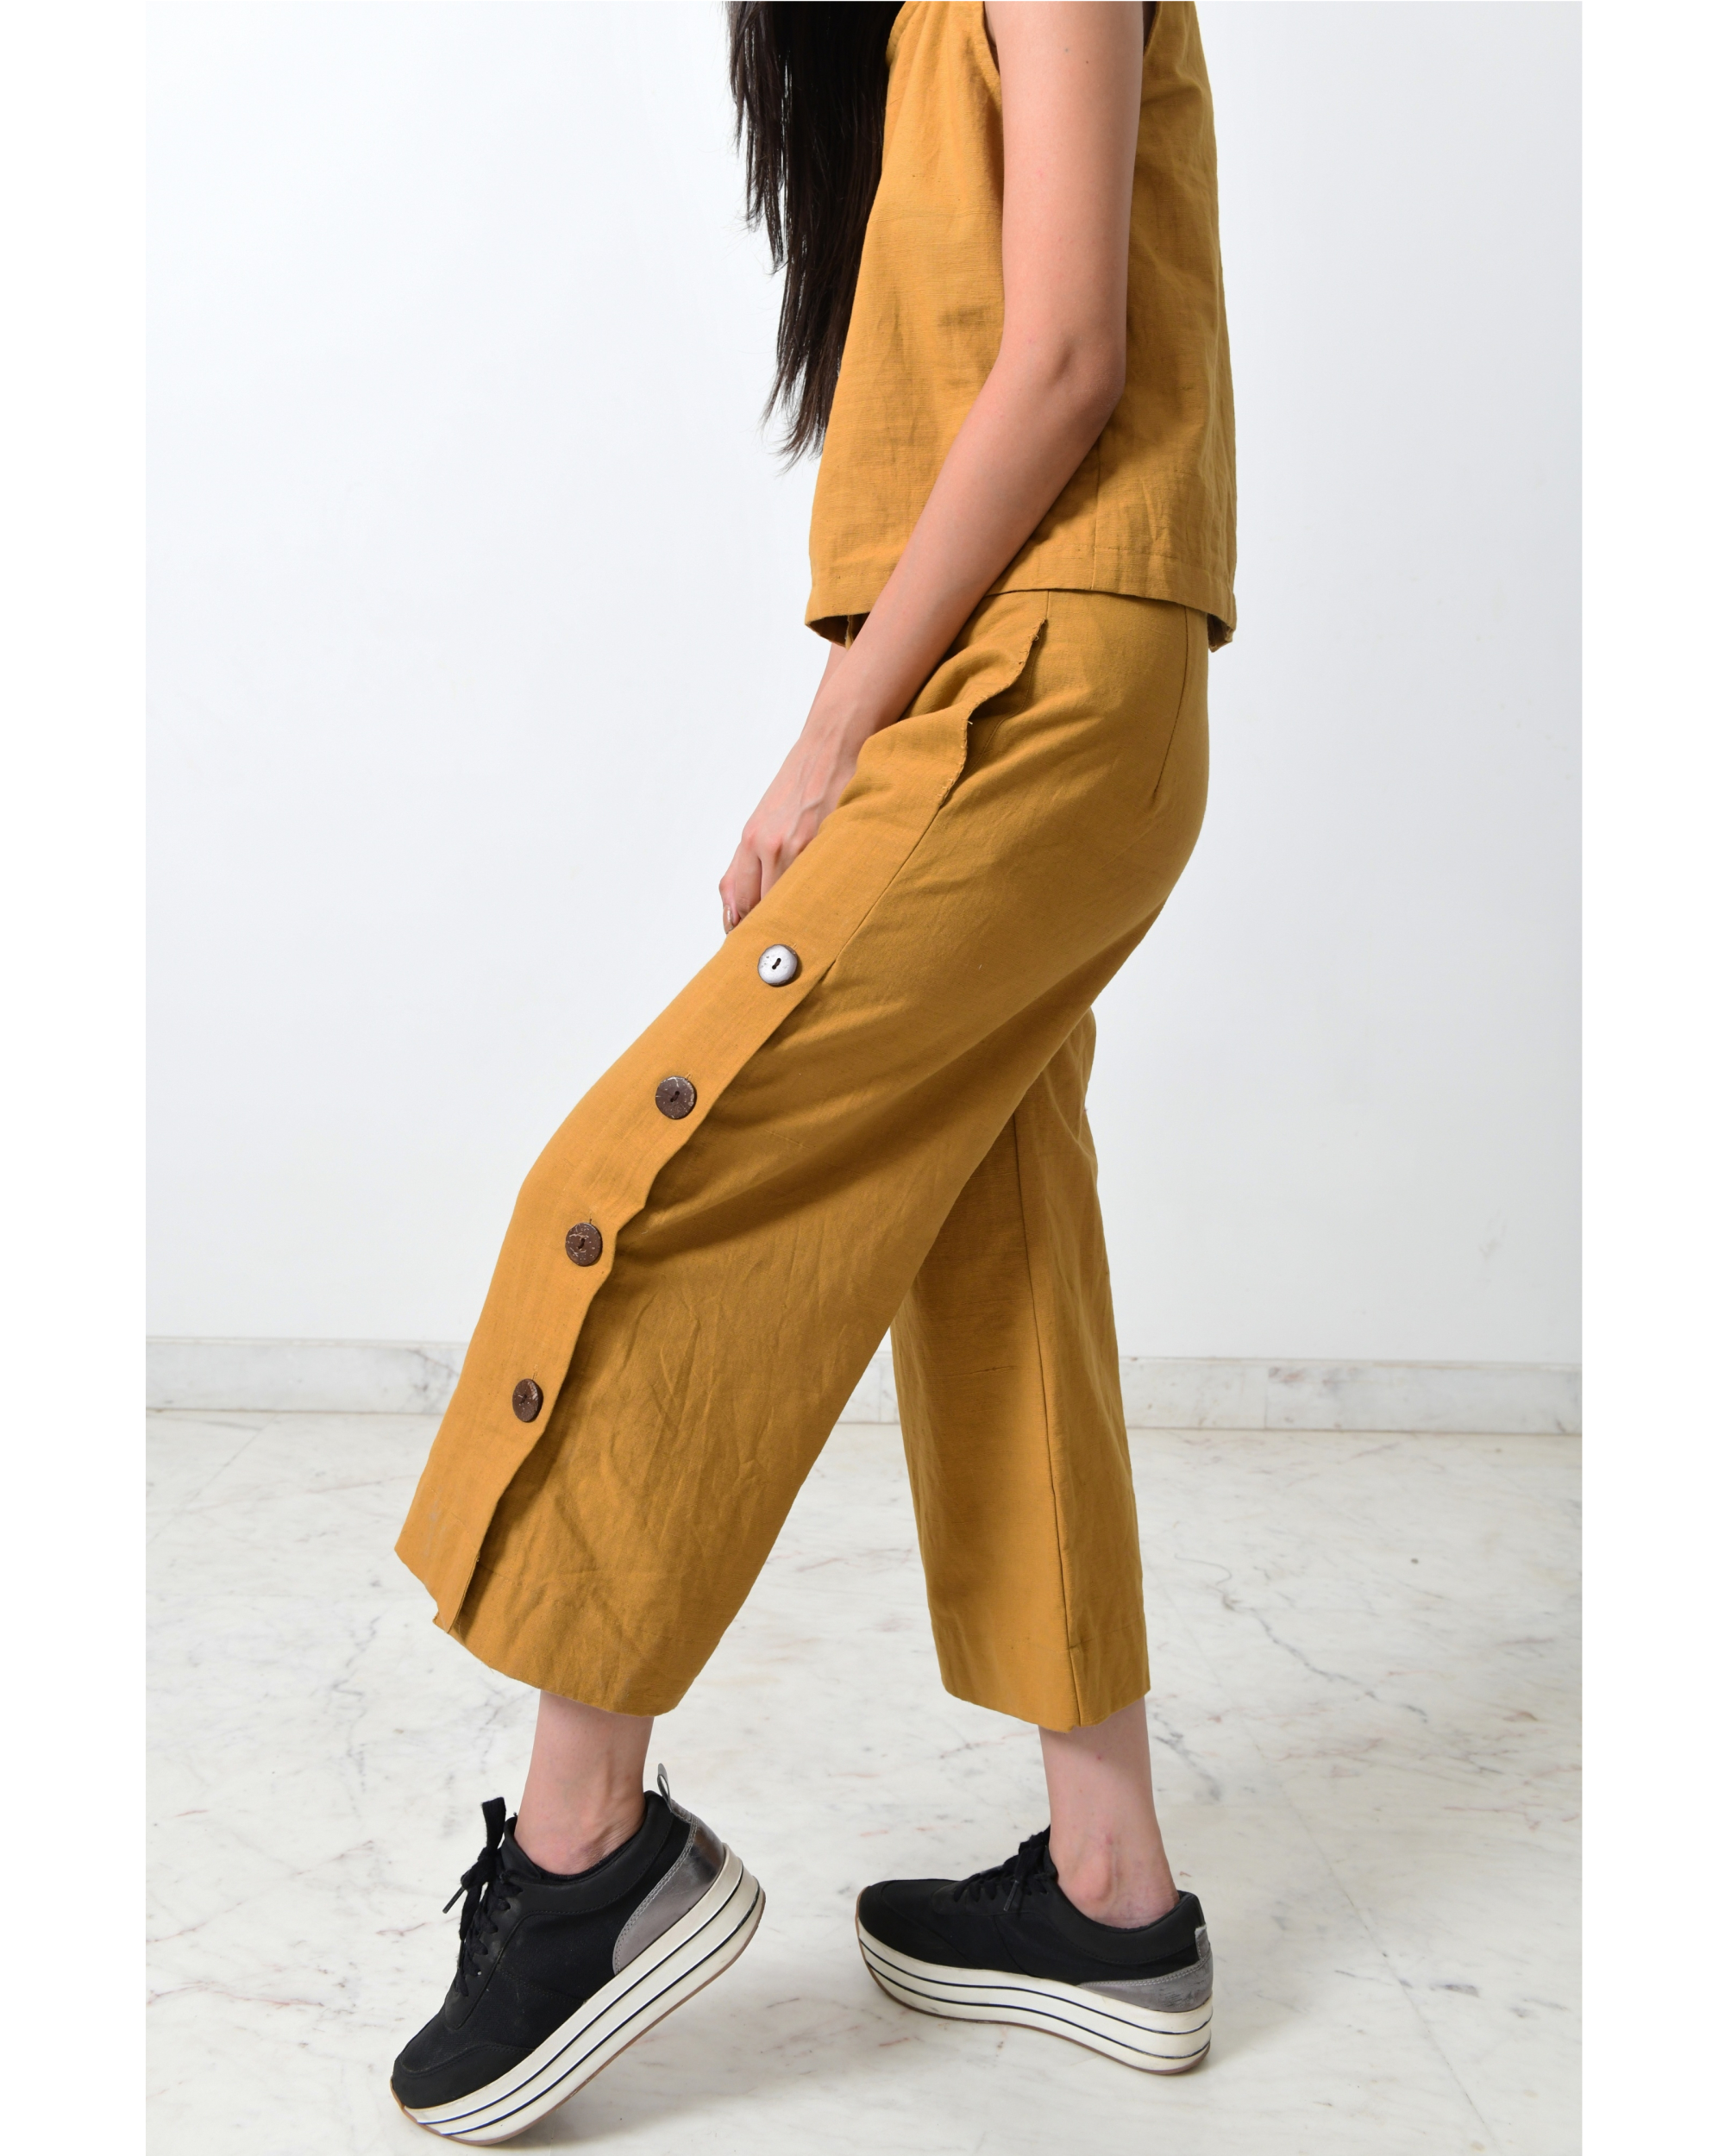 Pale mustard side open pants with buttons detailing